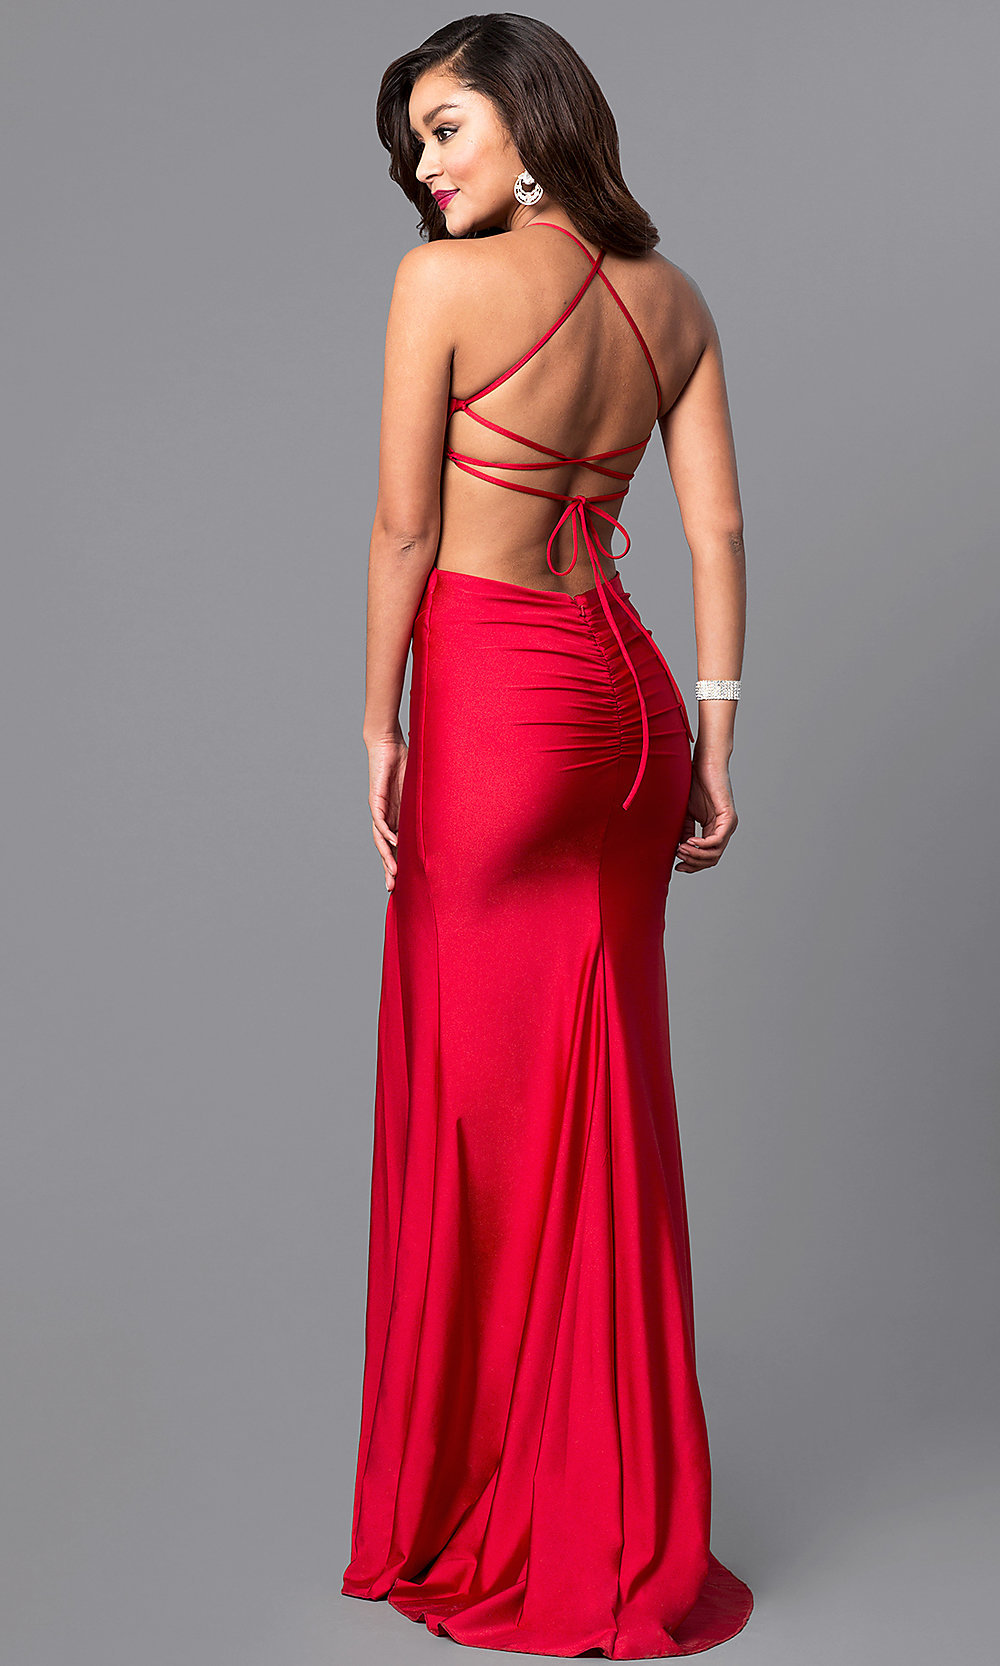 Open-Back Ruched Prom Dress with High Neck - PromGirl